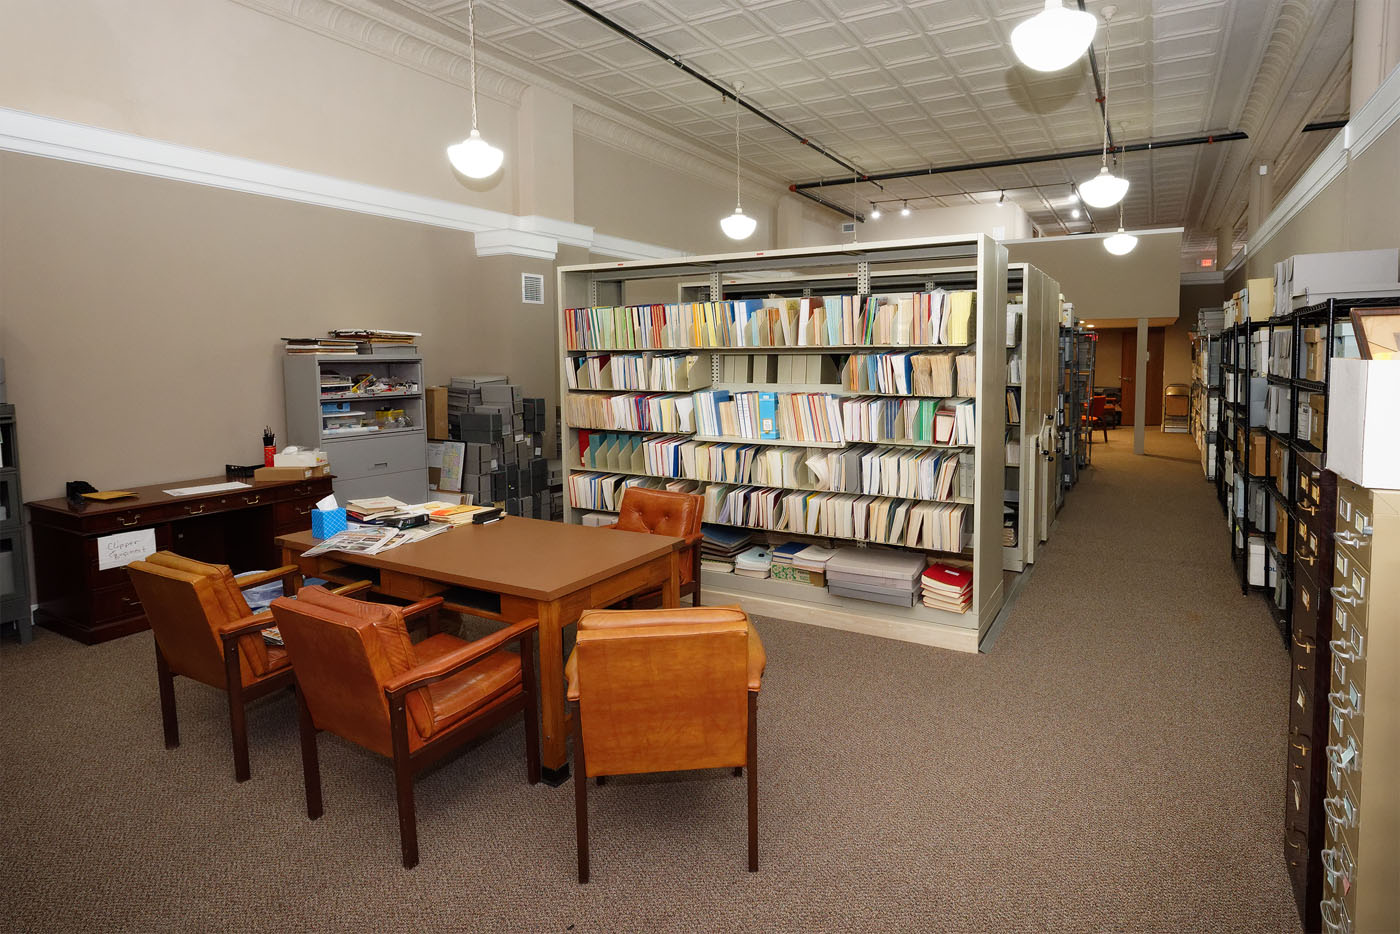 The research room is available for genealogy and local history research.